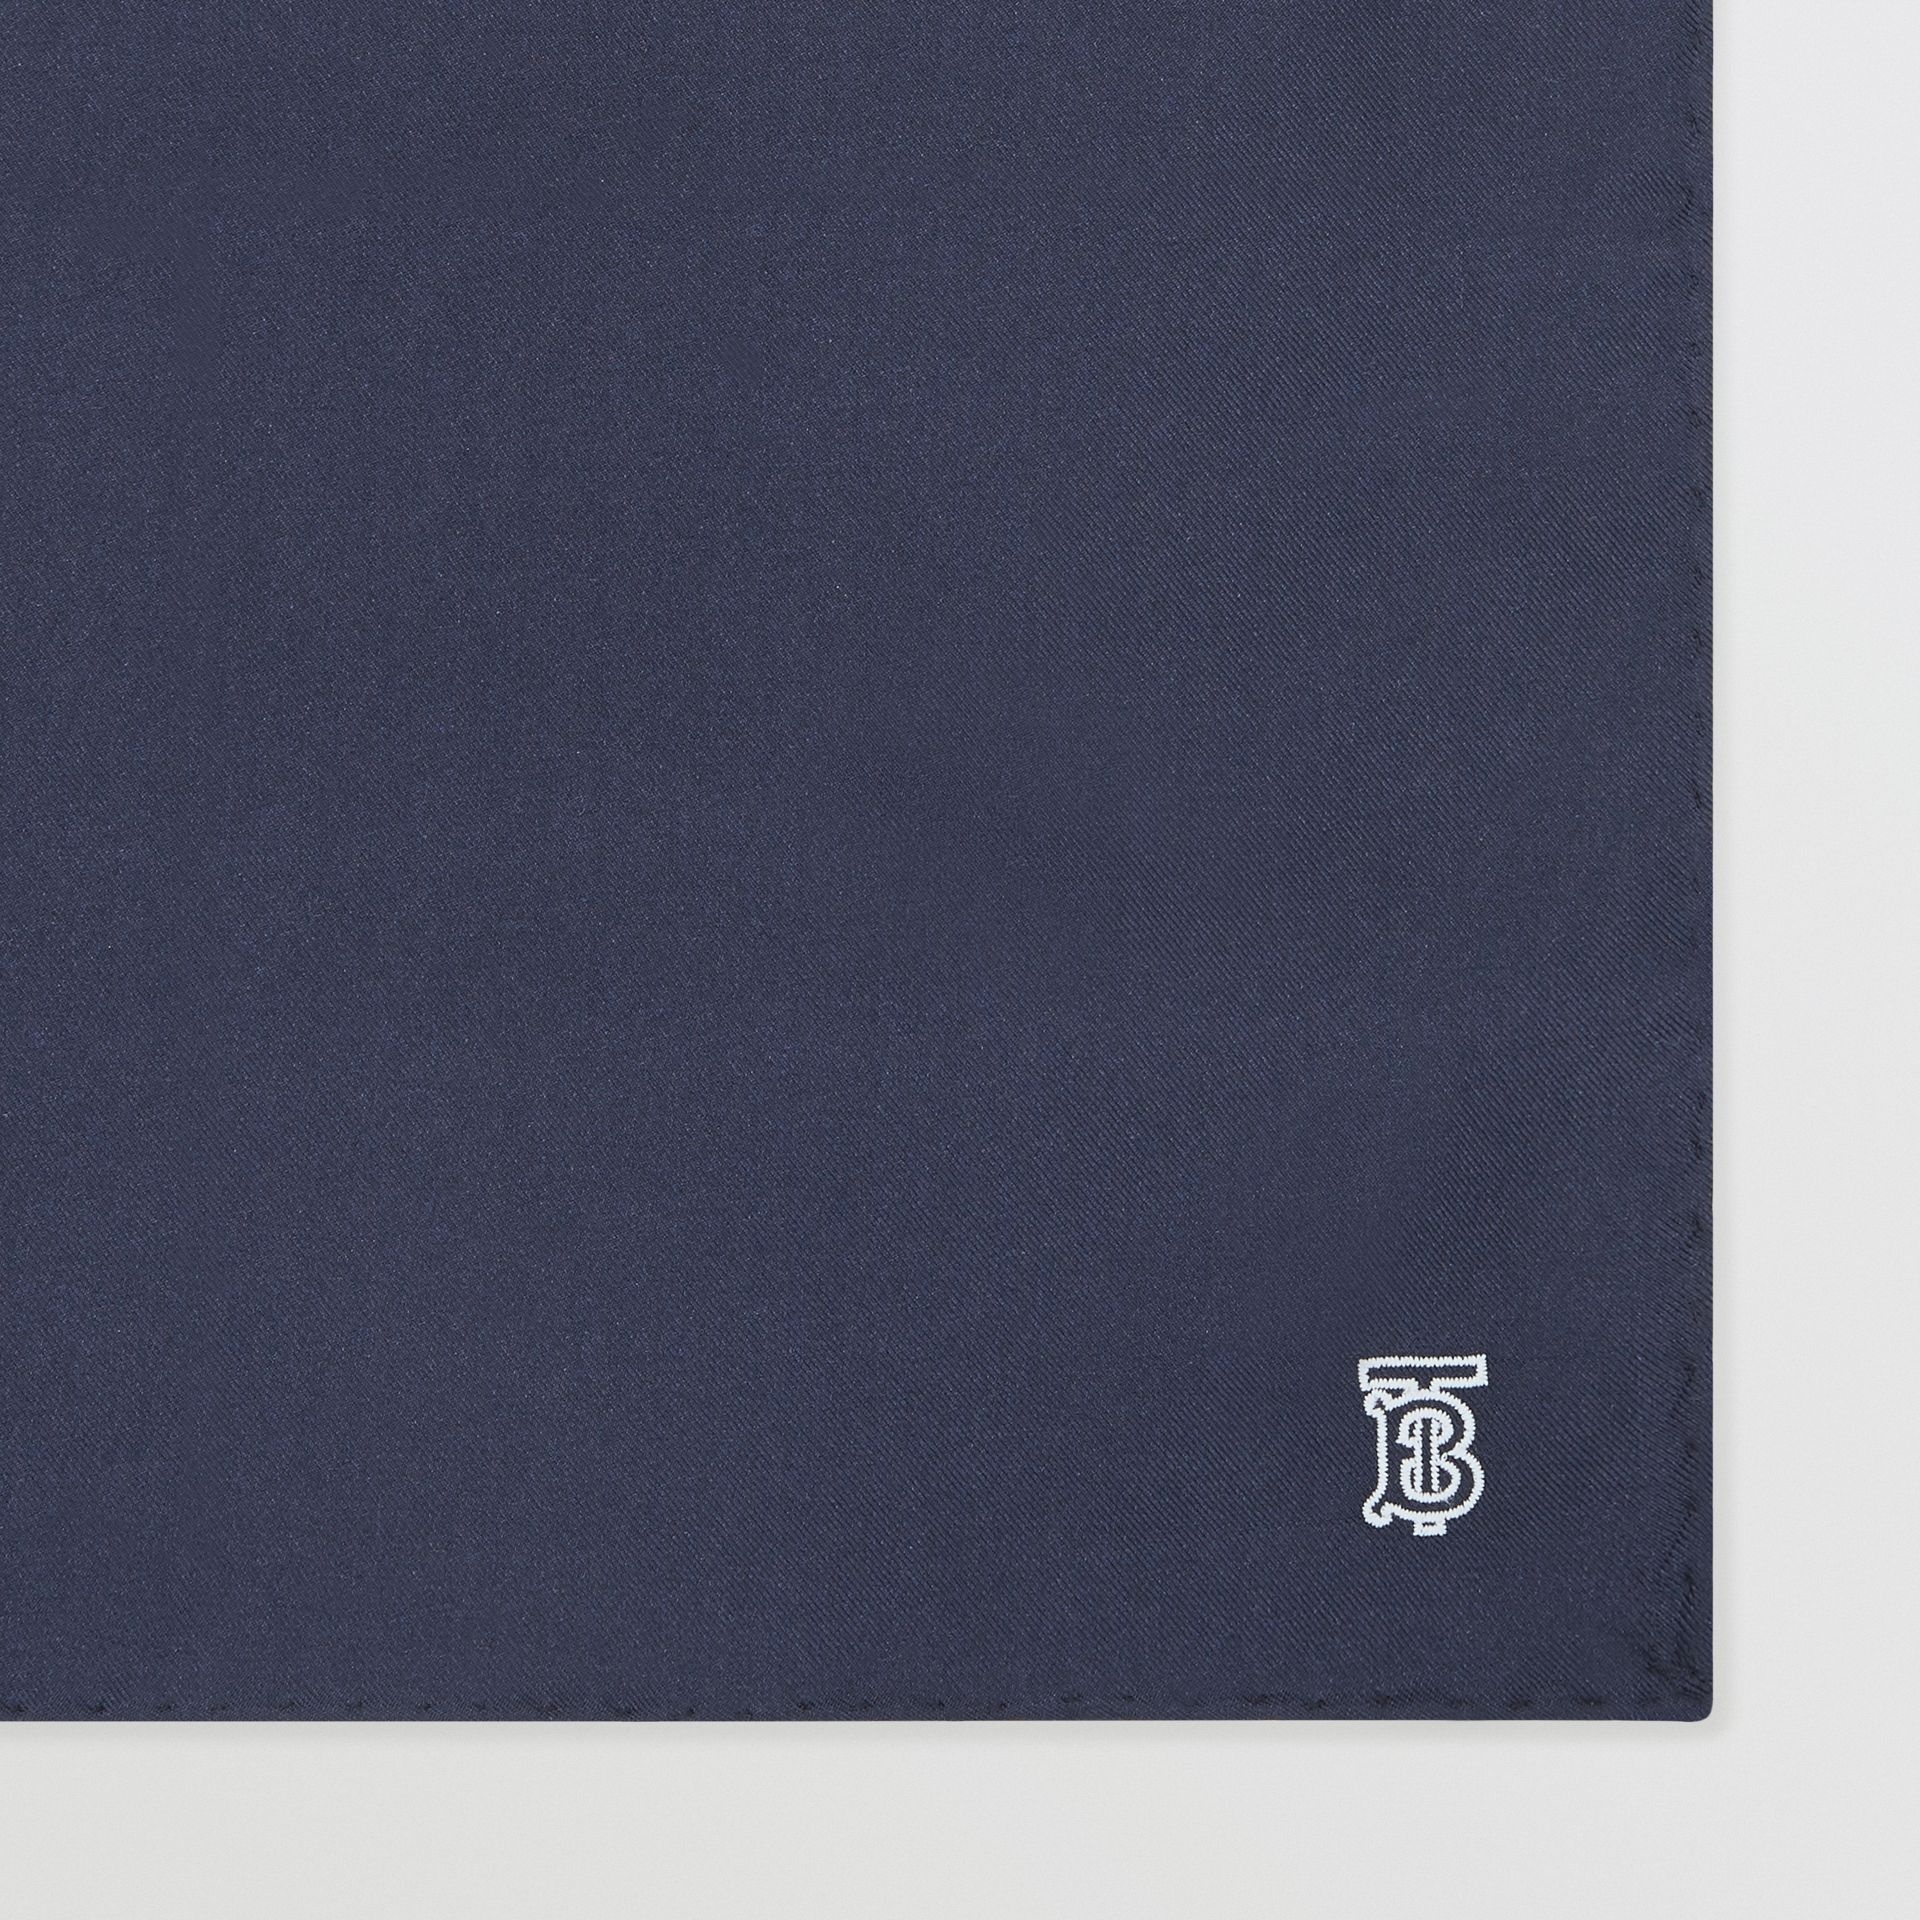 Monogram Motif Silk Pocket Square in Navy Blue - Men | Burberry Singapore - gallery image 1